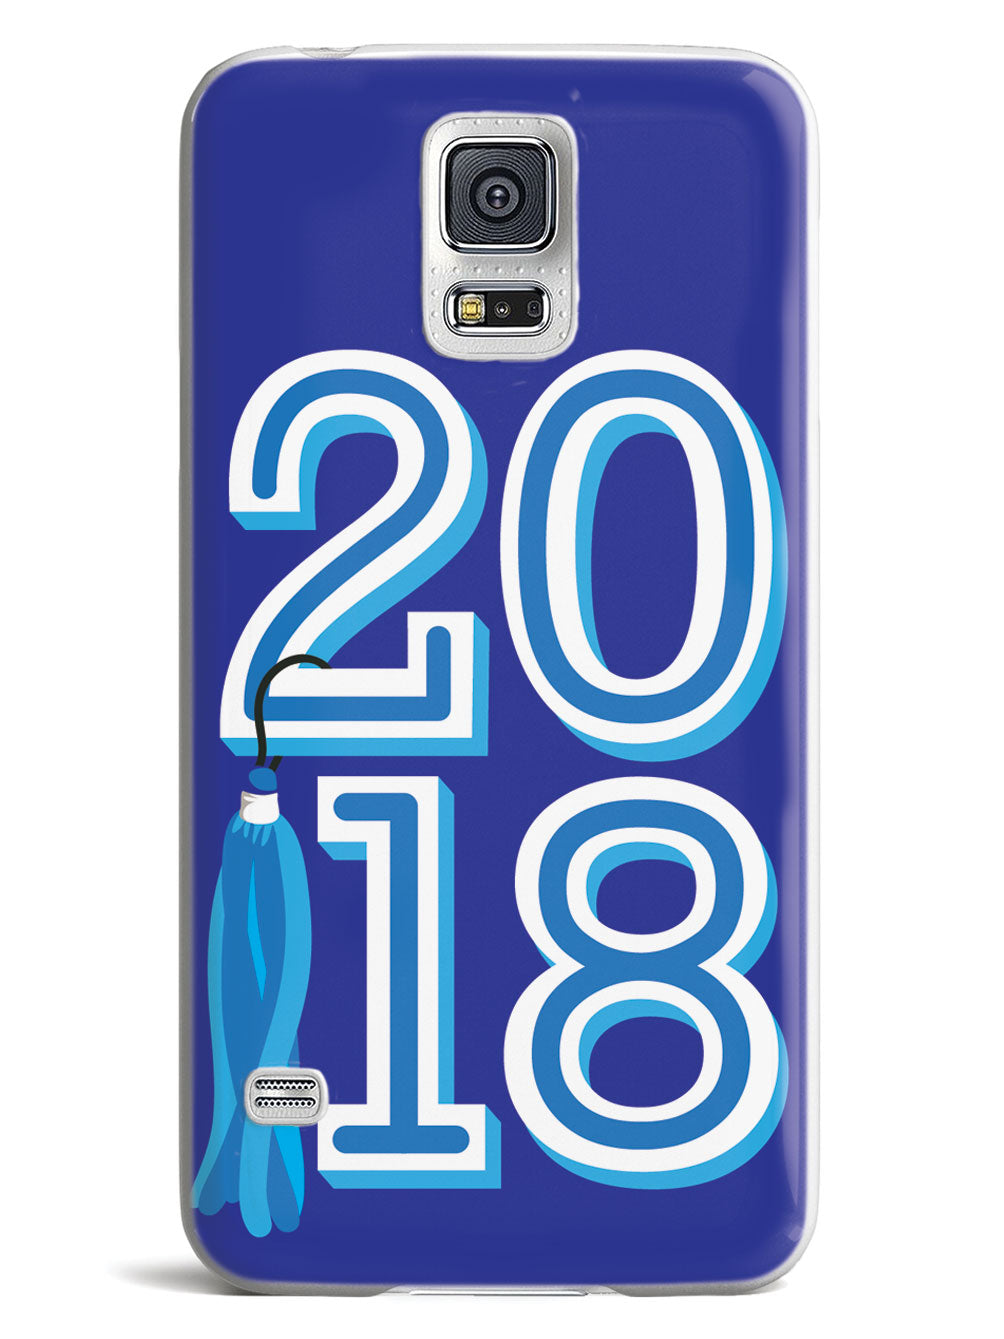 Class of 2018 - Blue - White Case